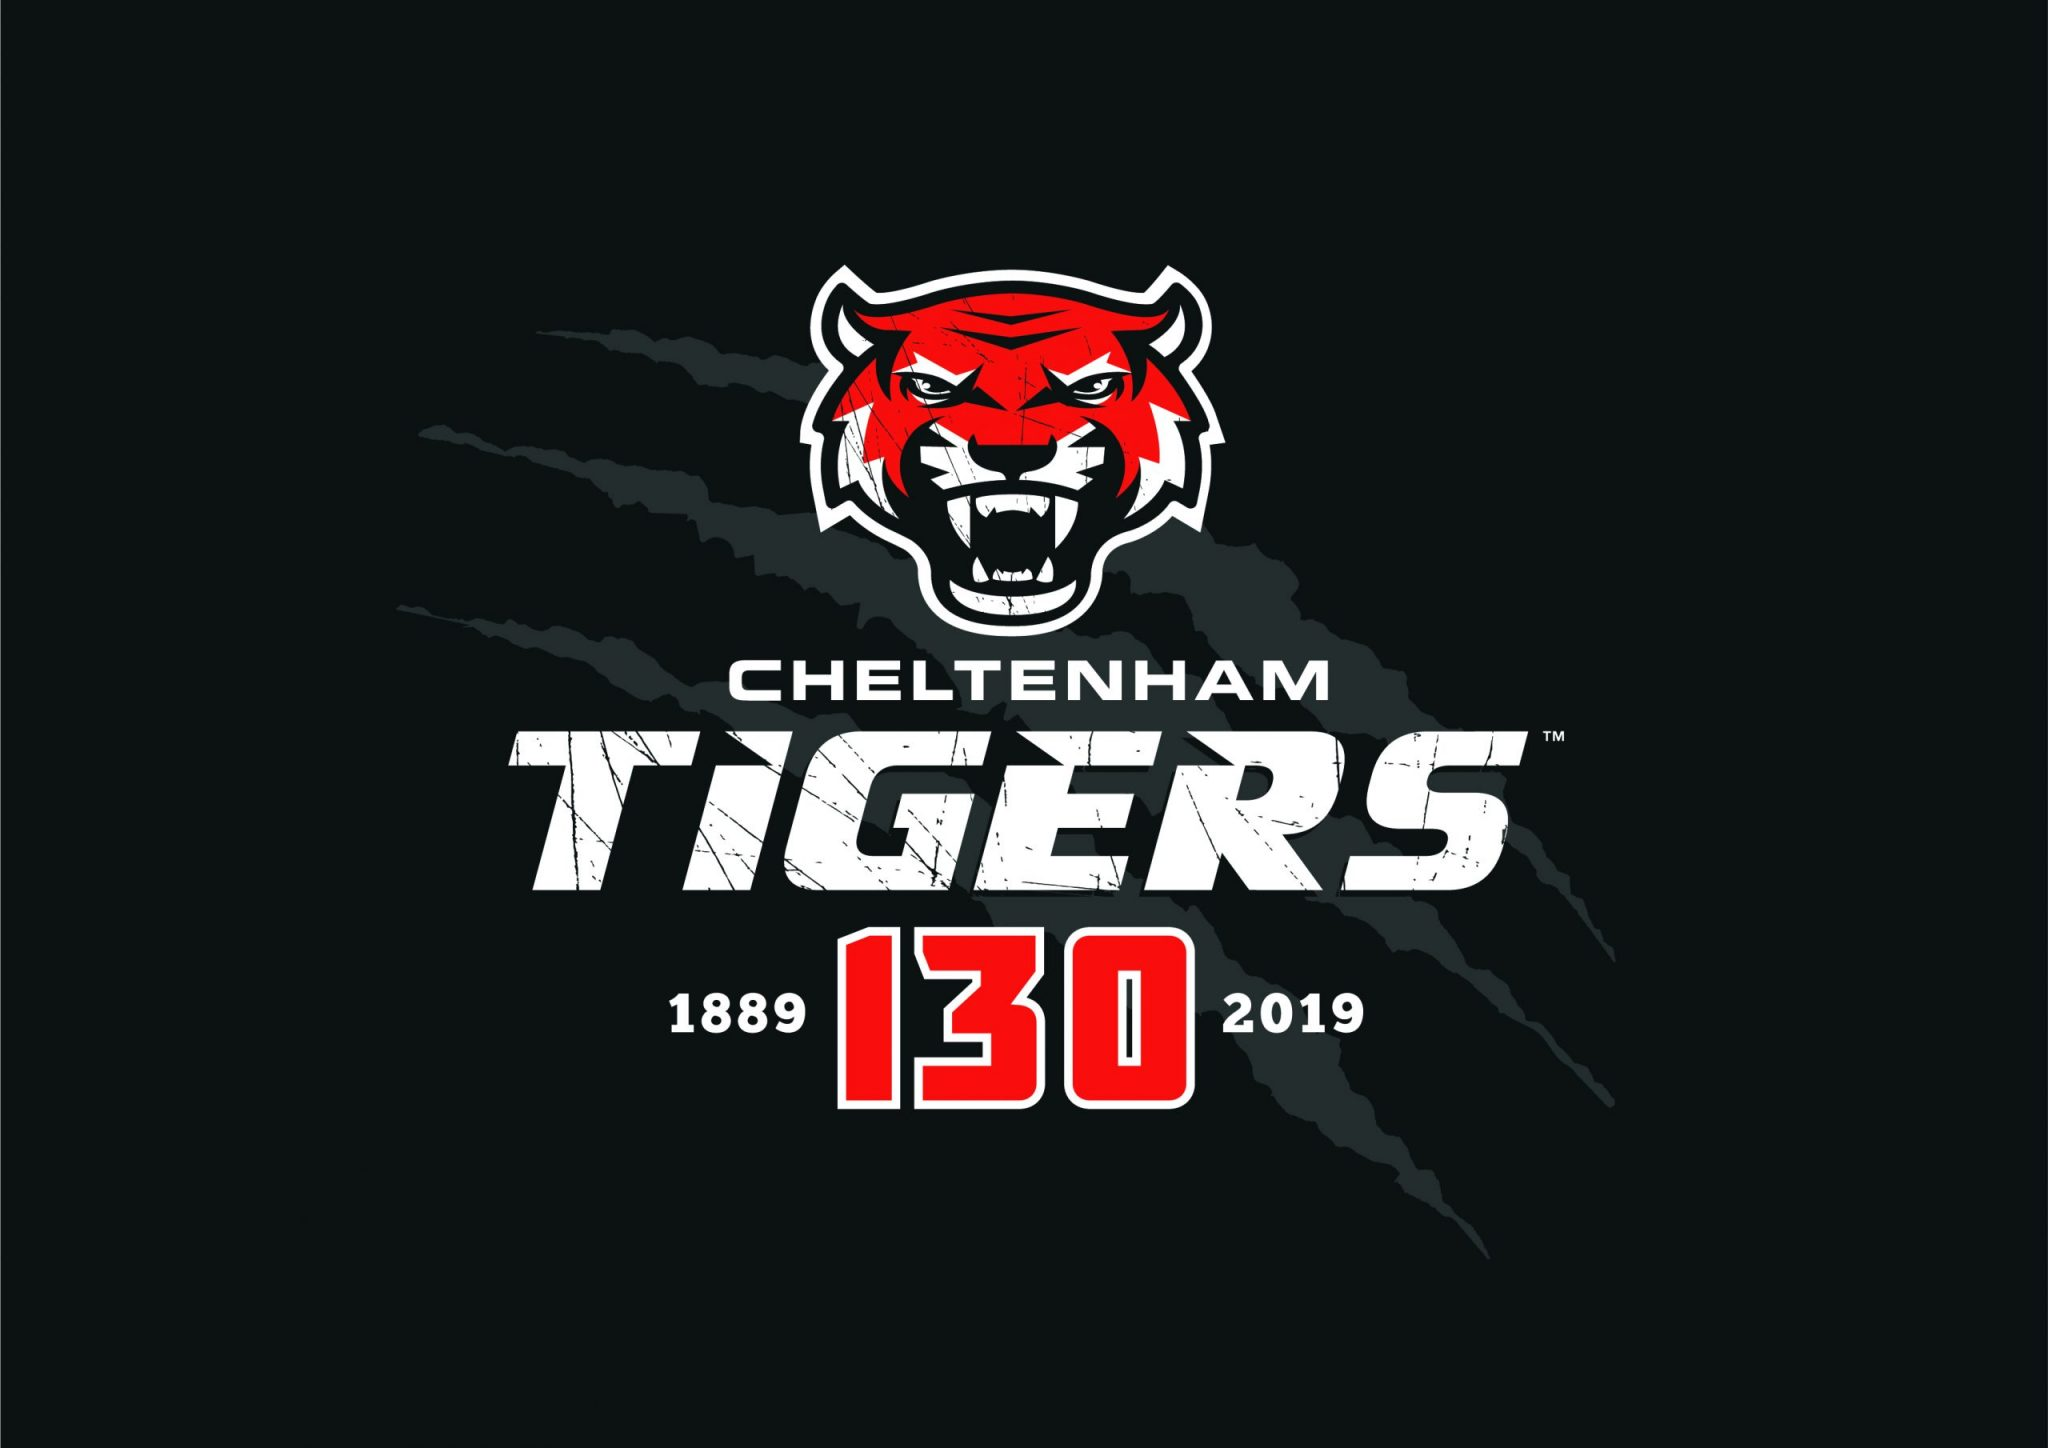 https://cheltenhamtigers.co.uk/wp-content/uploads/2019/07/Tigers-130-logo-scaled.jpg